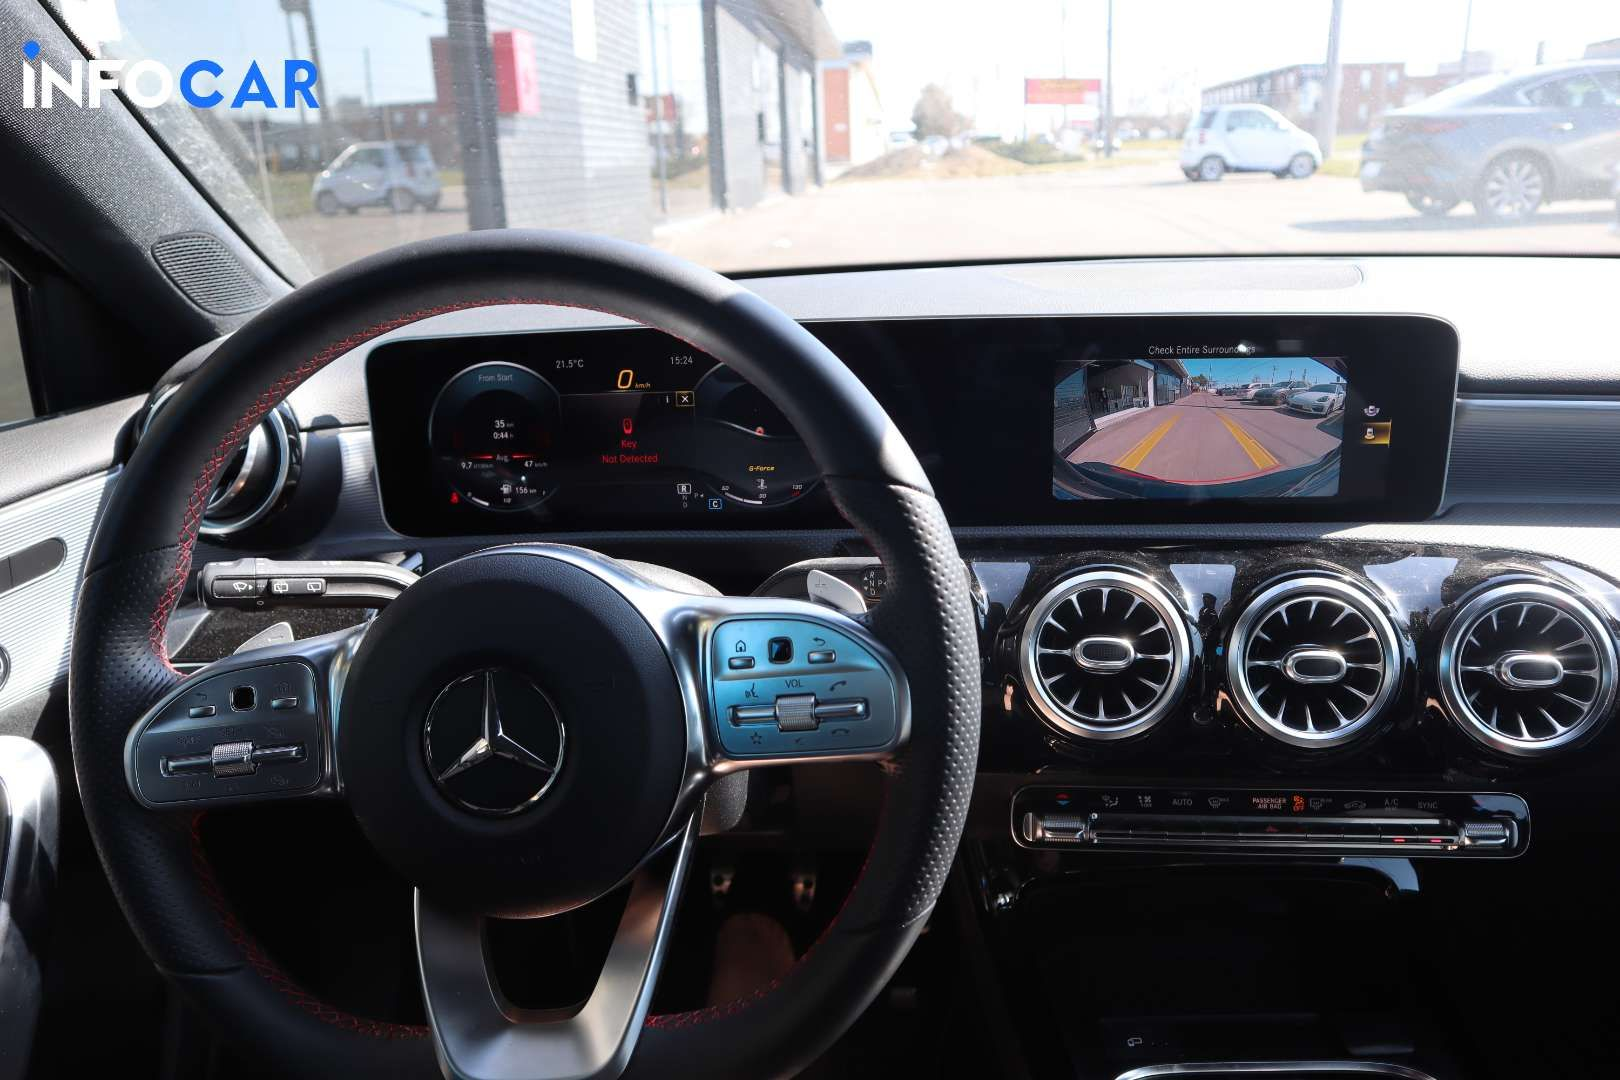 2019 Mercedes-Benz A-Class A250 HATCHBACK - INFOCAR - Toronto's Most Comprehensive New and Used Auto Trading Platform